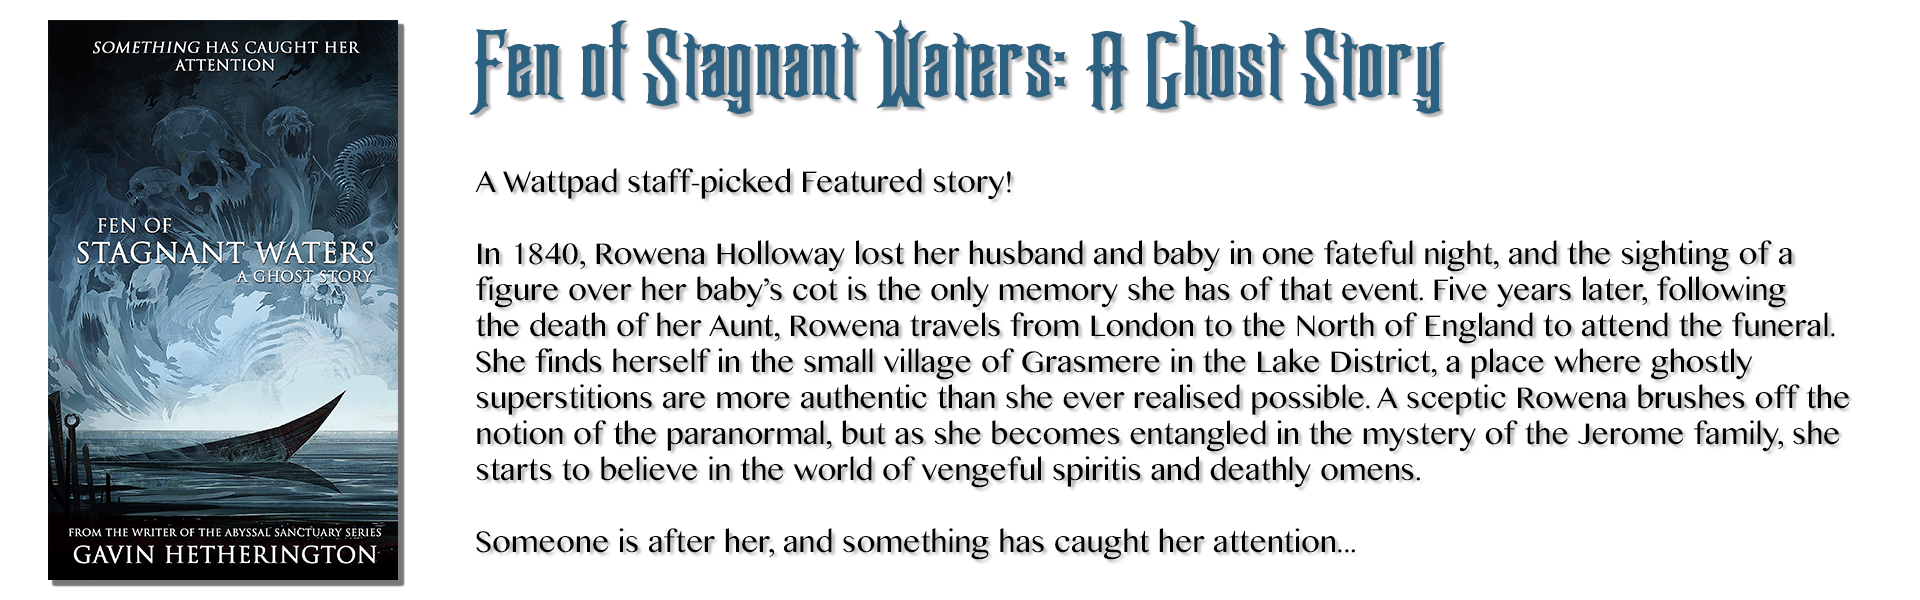 The Fen of Stagnant Waters saga: